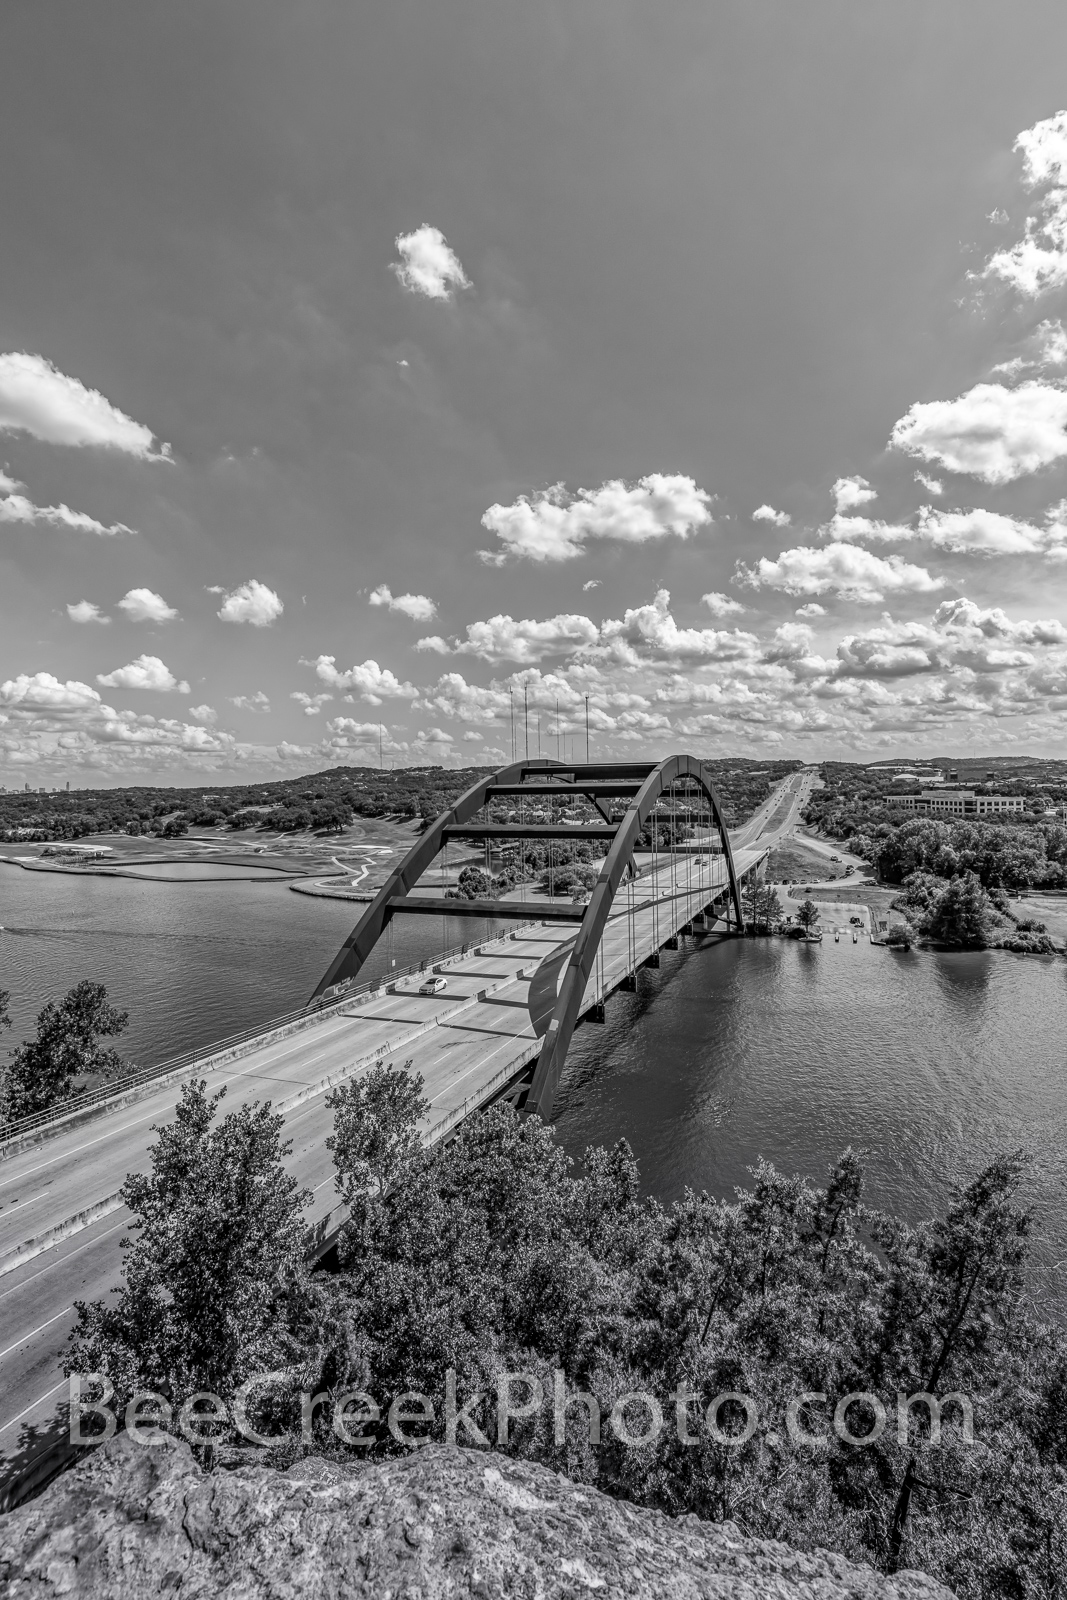 Austin Texas, 360 Bridge, Pennybacker Bridge, 360 hwy, texas hill country, lake austin, downtown austin, city of austin, hill coutry, Capital of Texas Highway, pennybacker overlook, black and white,ve, photo